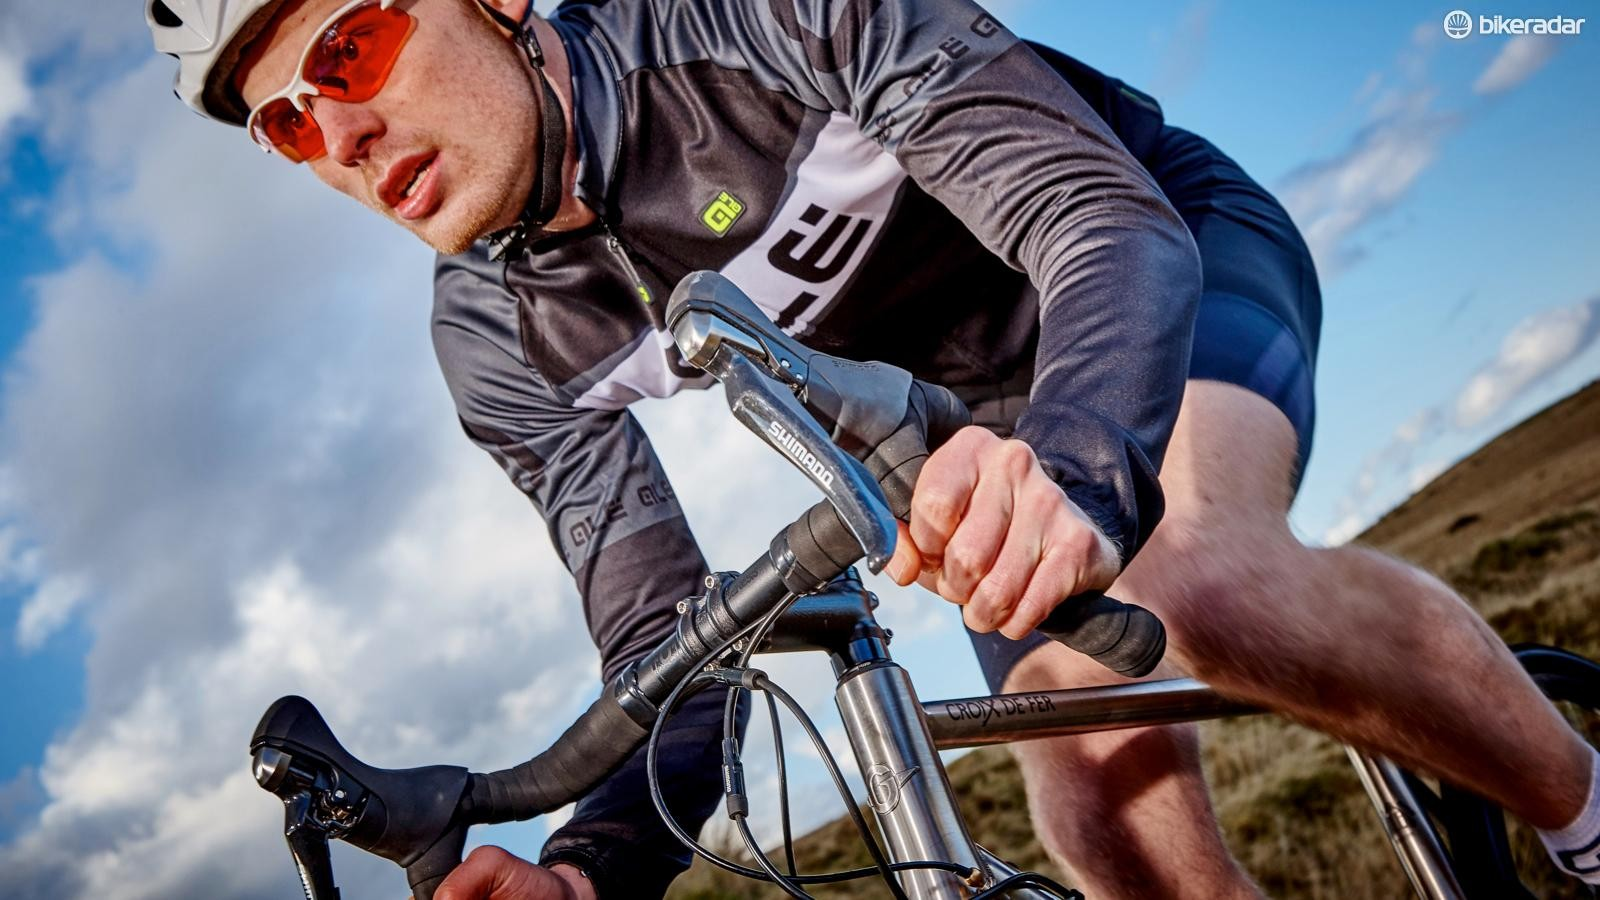 If you want to ride mixed terrain fast then the Genesis Croix de Fer Ti is an excellent choice